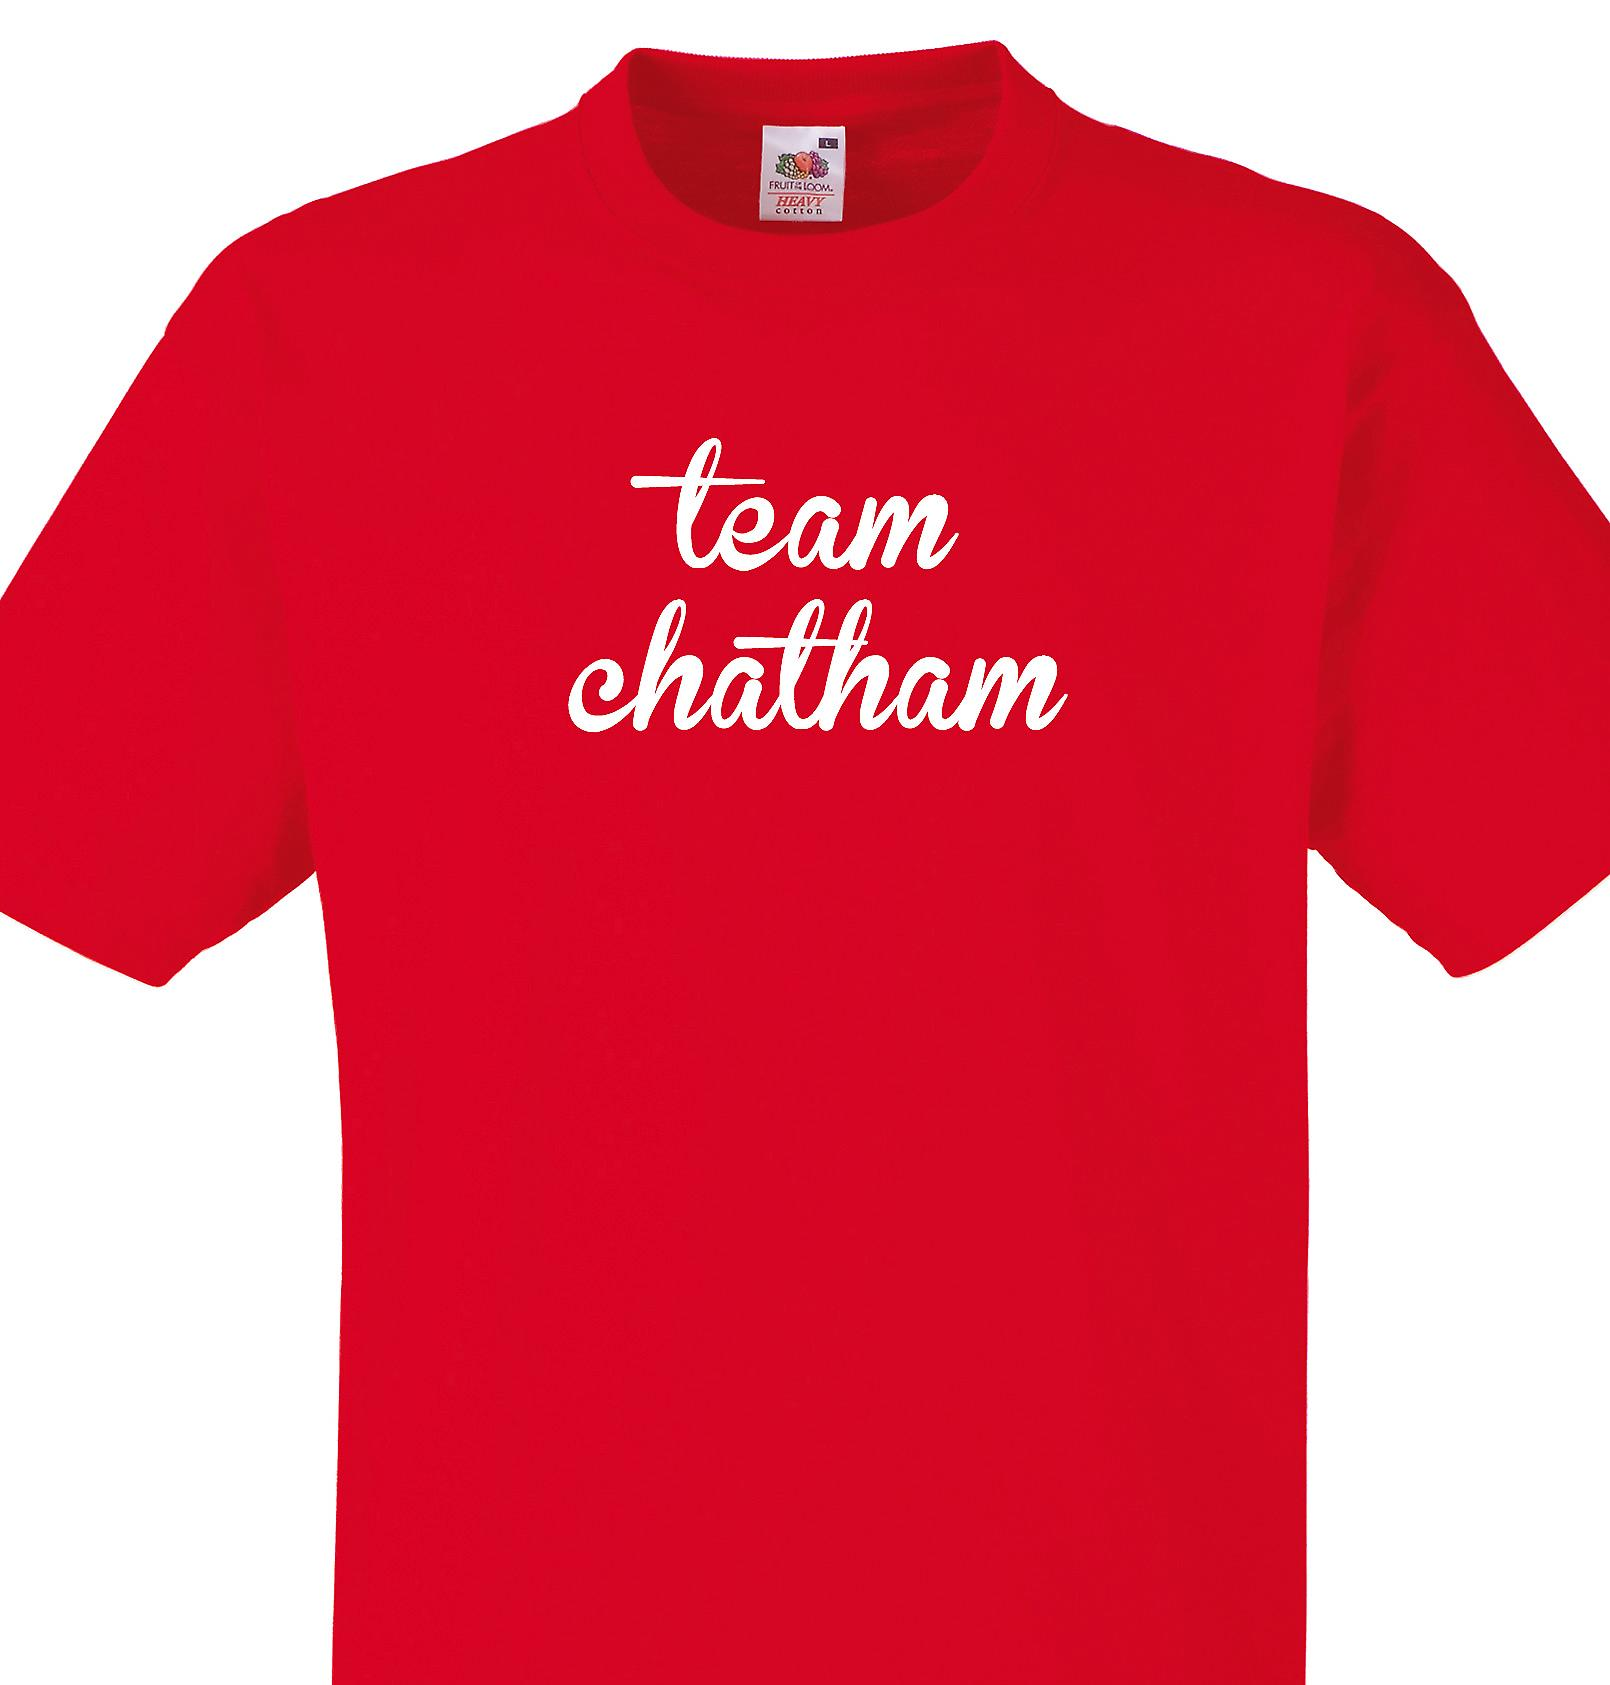 Team Chatham Red T shirt